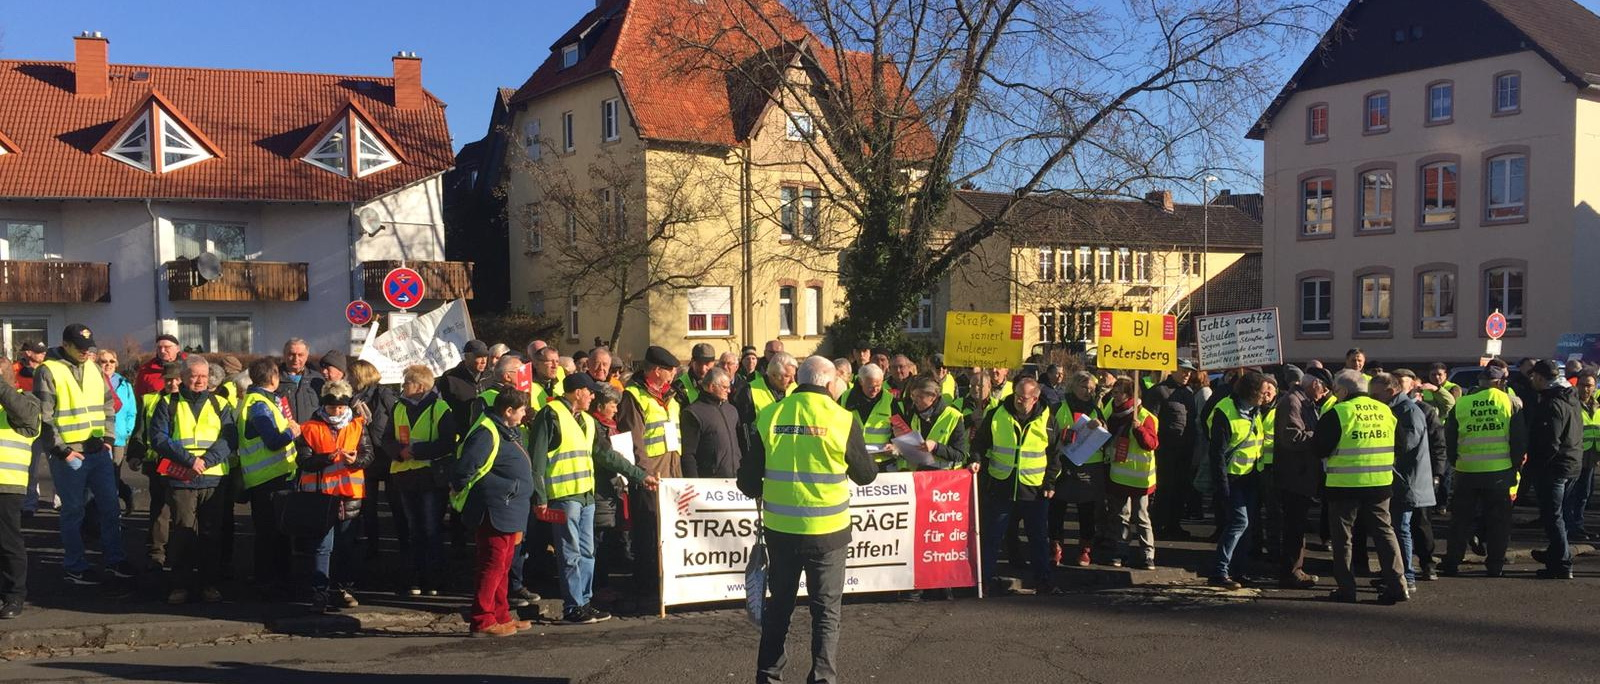 2019 02 16 PM Demo Alsfeld 3